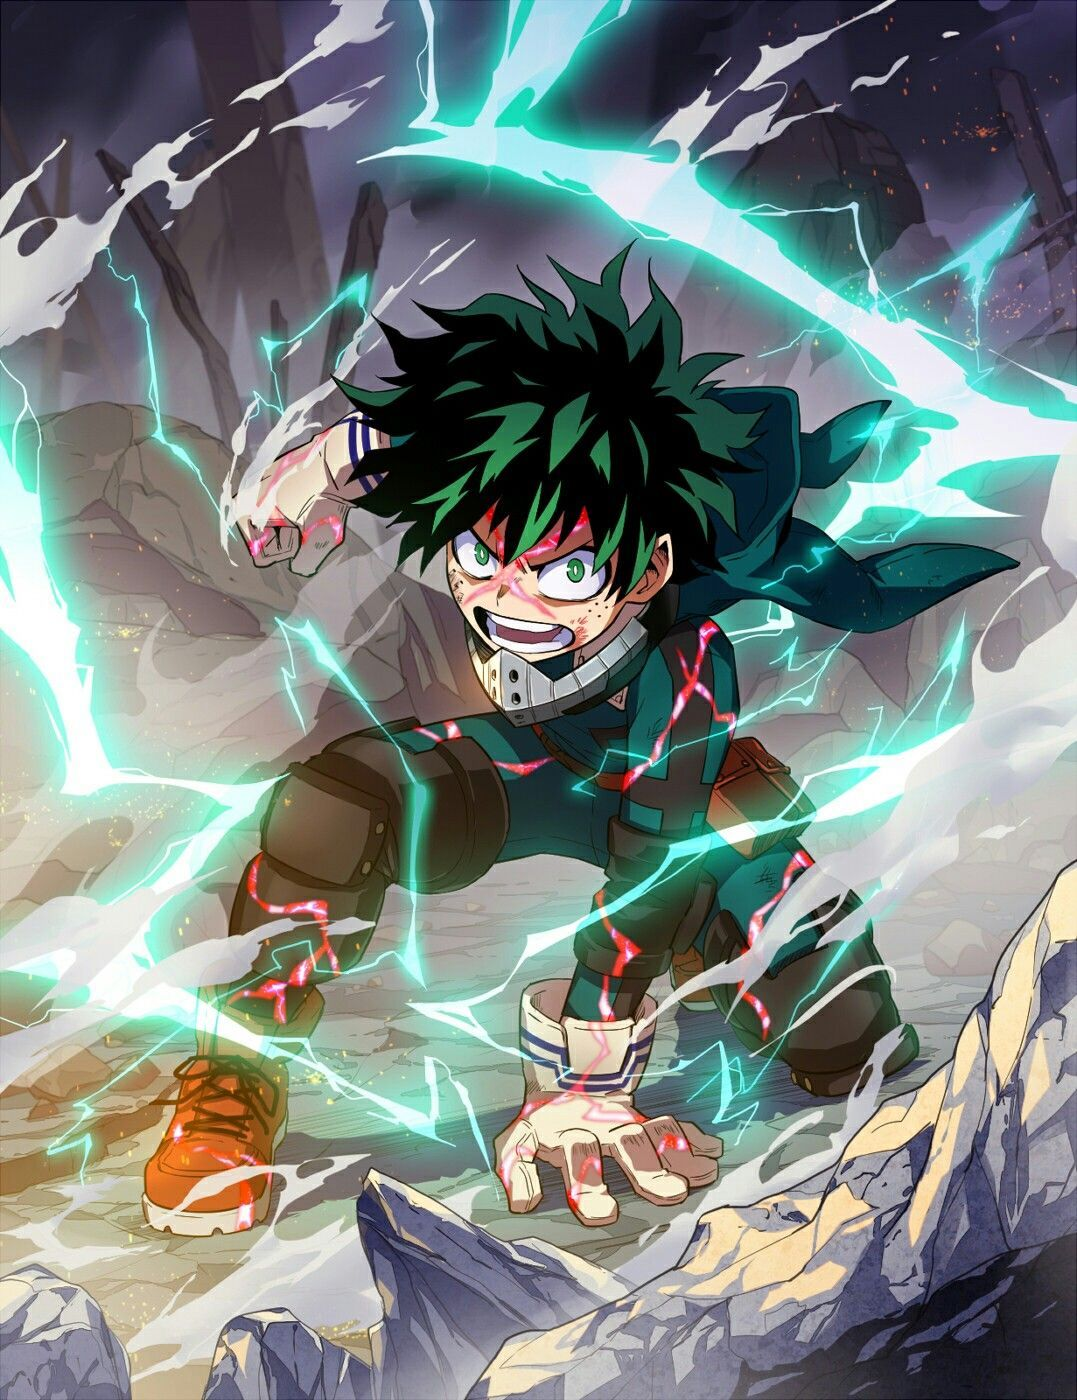 Cool Deku Anime Wallpapers Wallpaper Cave Amazing deku wallpaper pictures, some really cool ones and other adorable ones. cool deku anime wallpapers wallpaper cave